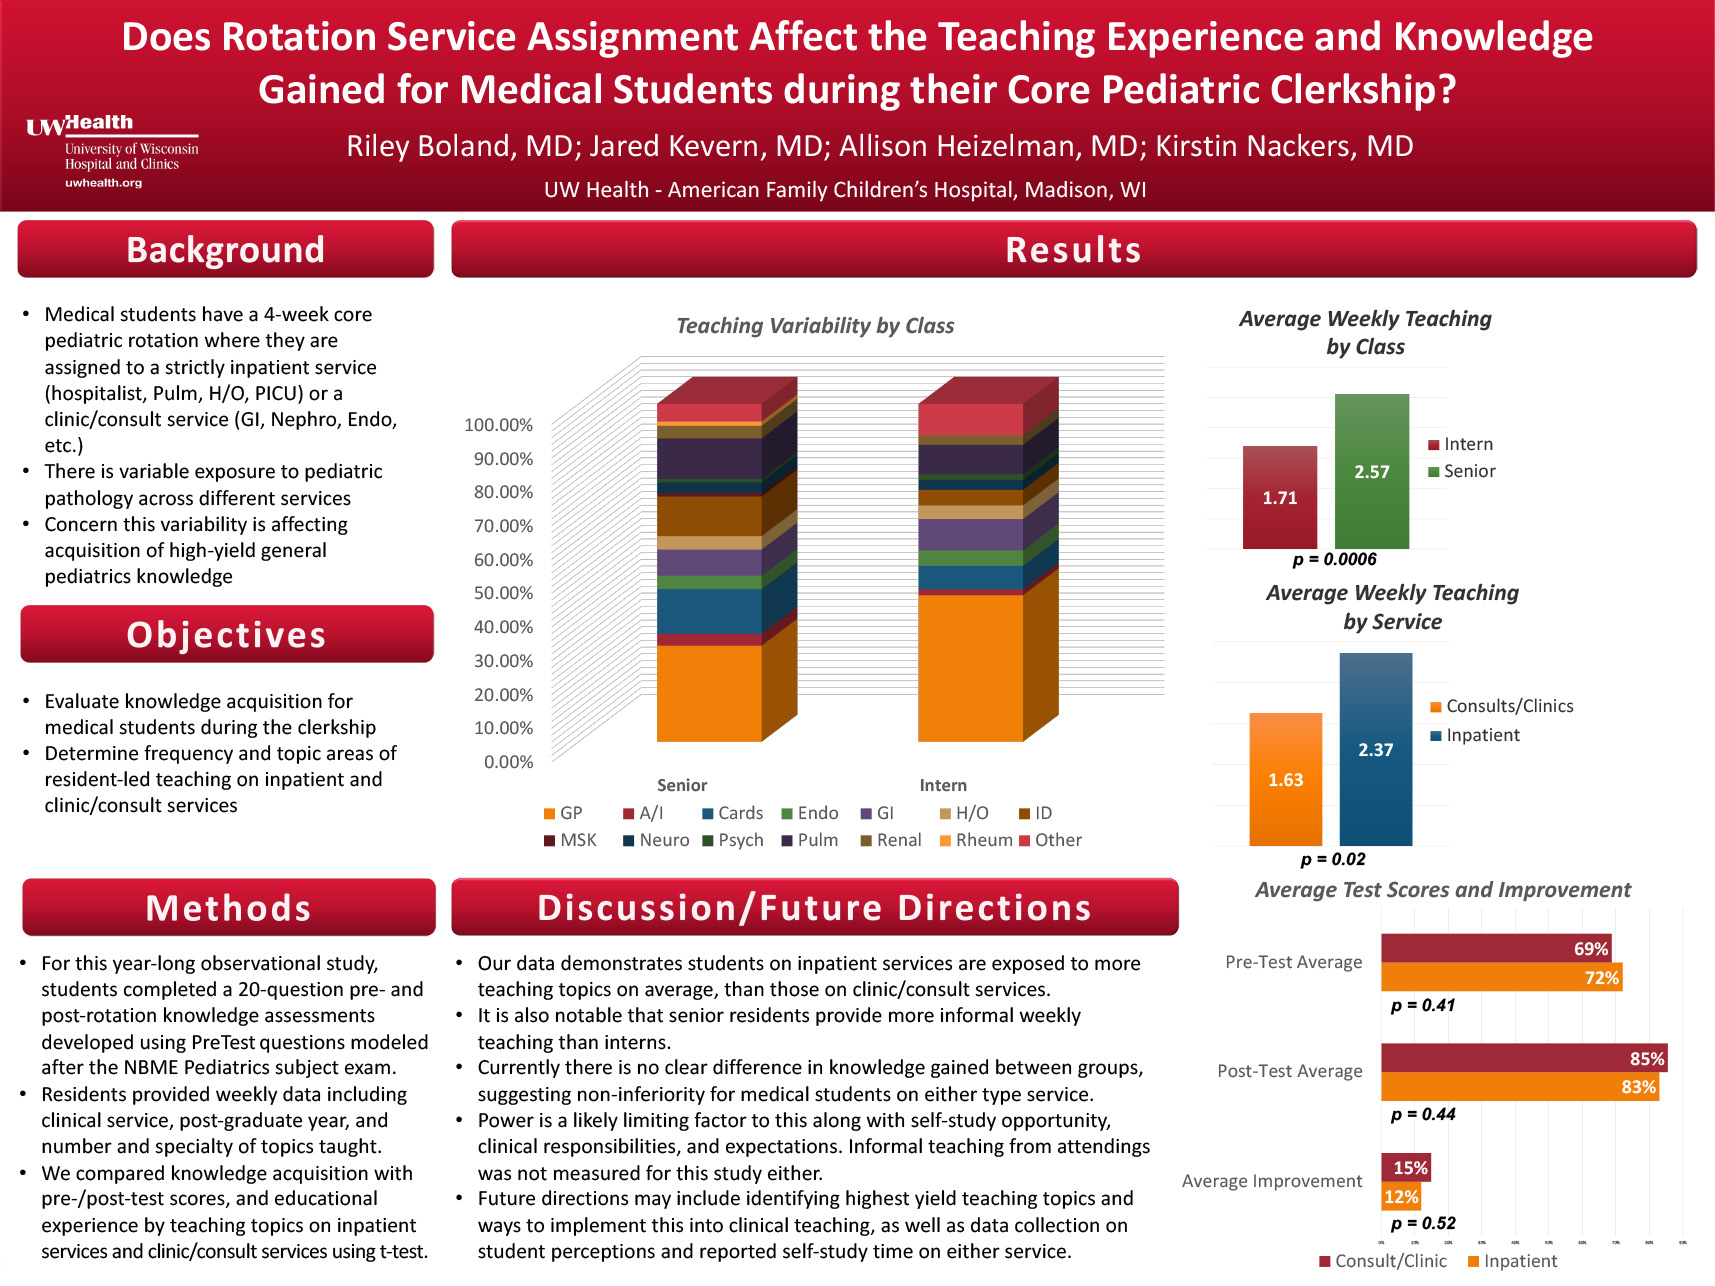 Does Rotation Service Assignment Affect the Teaching Experience and Knowledge Gainedfor Medical Students during their Core Pediatric Clerkship? poster image